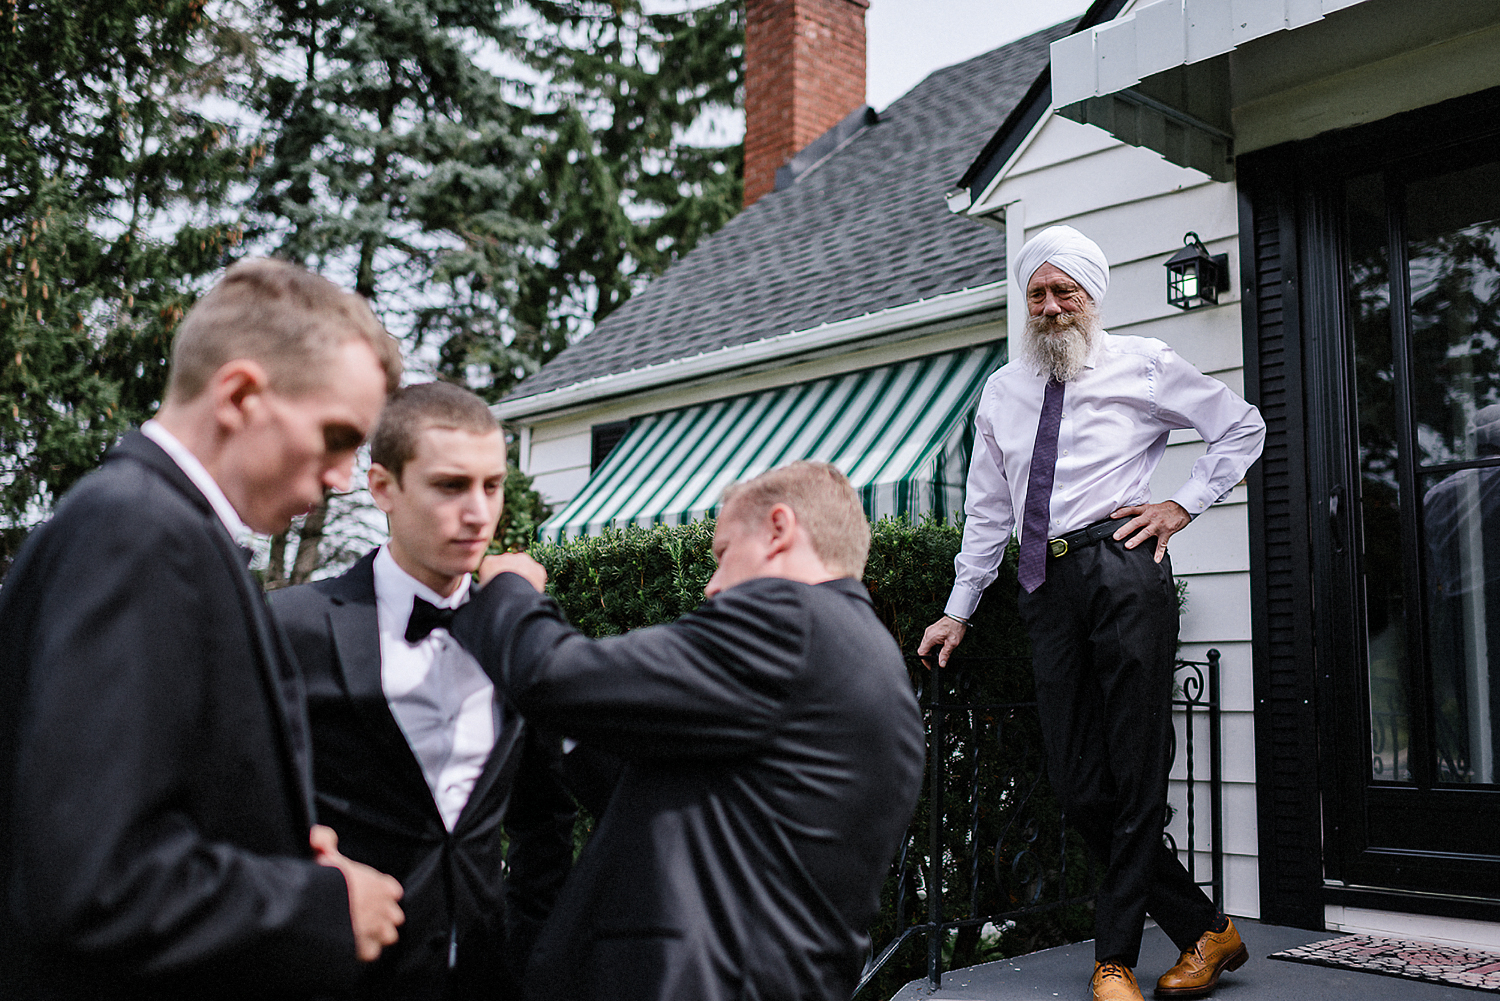 Toronto-Wedding-Photographers-with-natural-photojournalistic-documentary-style-3b-photo-Niagara-on-the-Lake-Wedding-Getting-REady-in-Port-Dalhousie-Granpa-candid.jpg